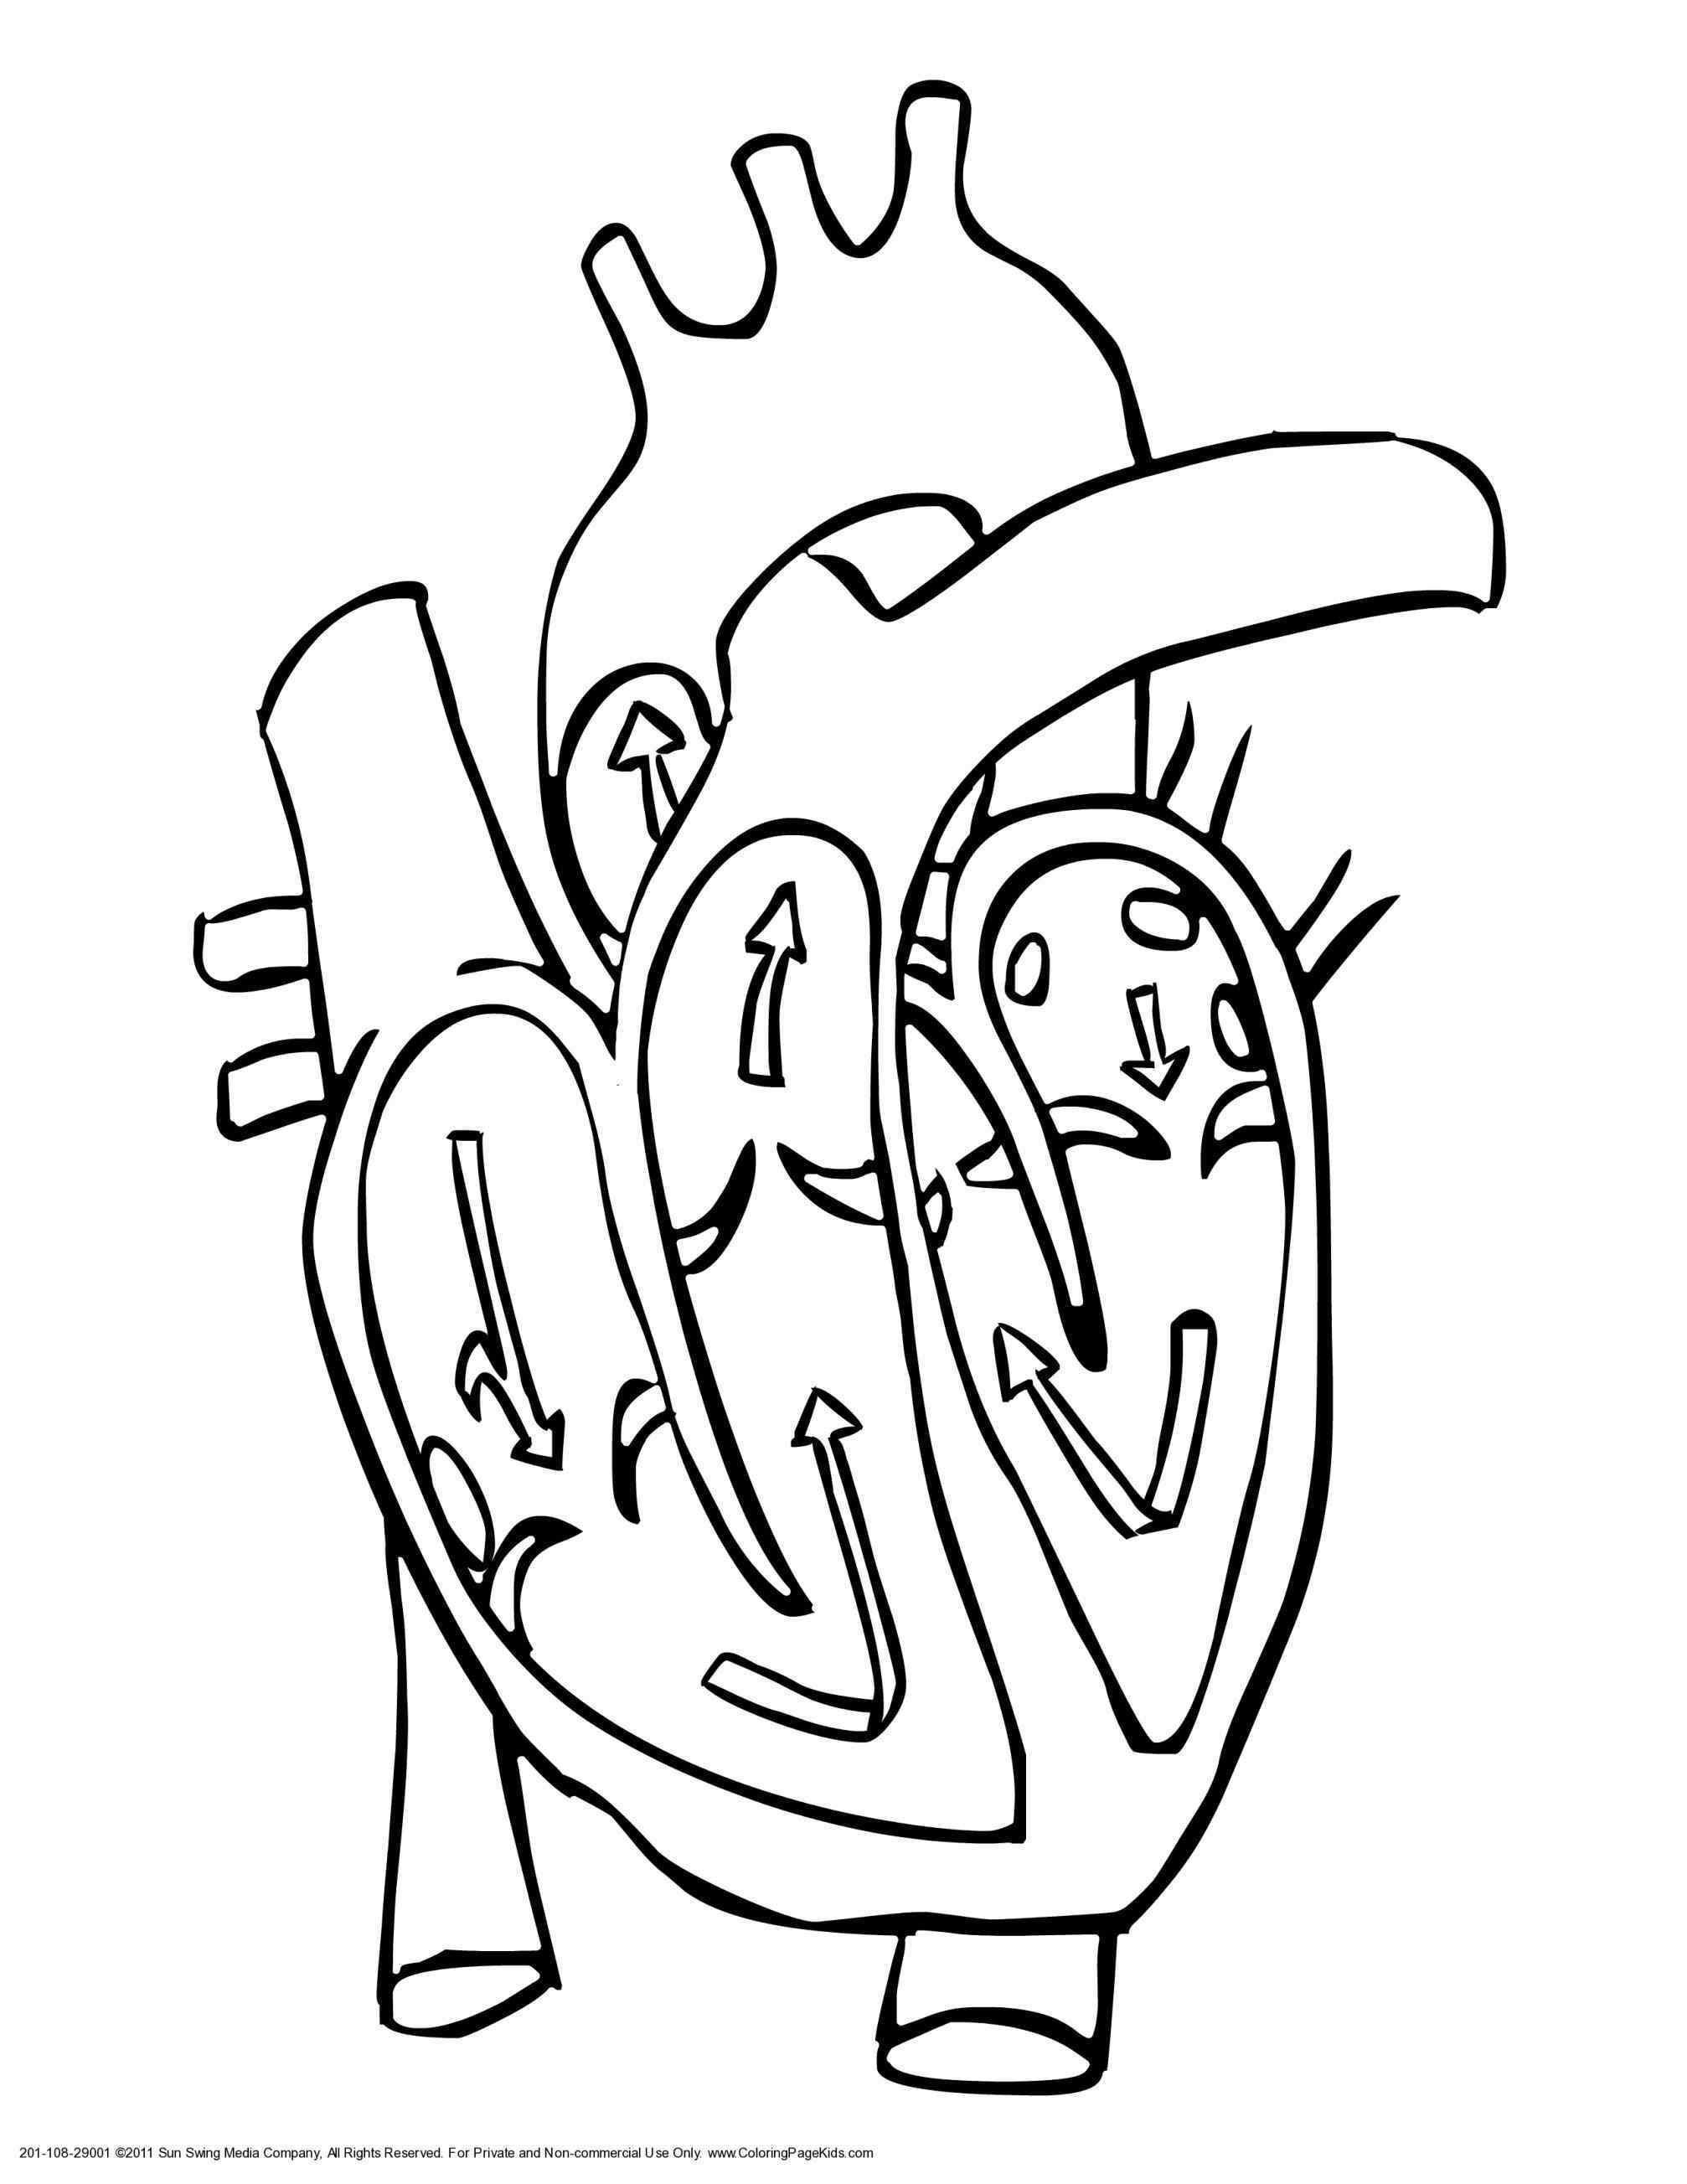 2014x2607 Broken Heart Coloring Pages For Adults Your Meme Source